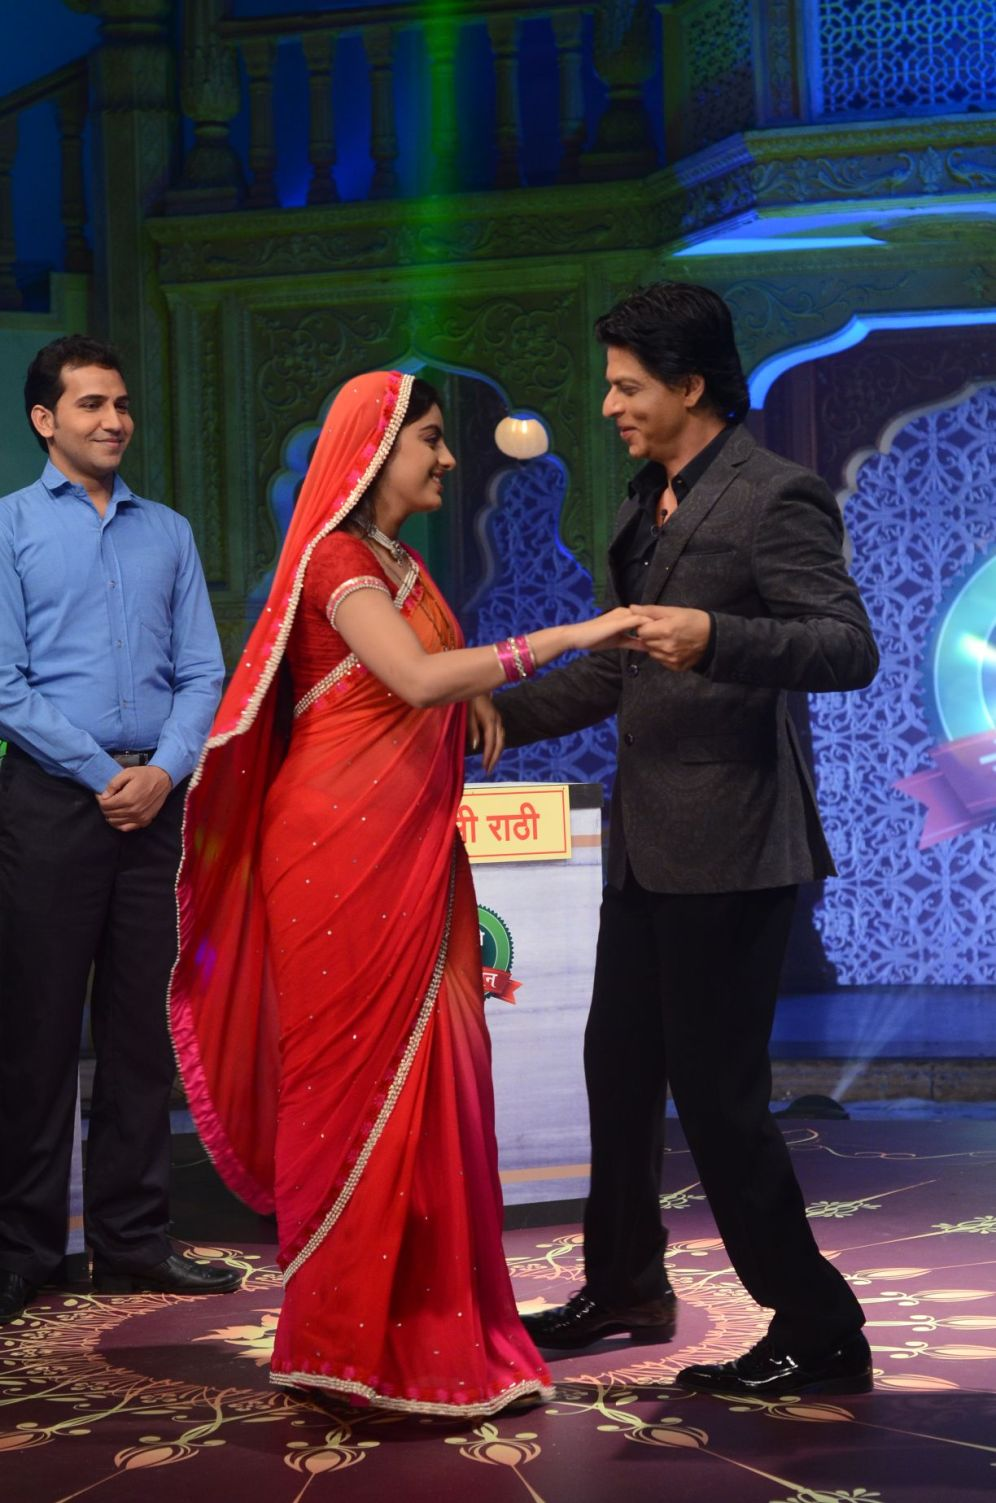 Shahrukh Khan dancing with Sandhya aka Deepika Singh during the shoot of Diya aur Baati Hum when he came for the promotion of Chennai Express